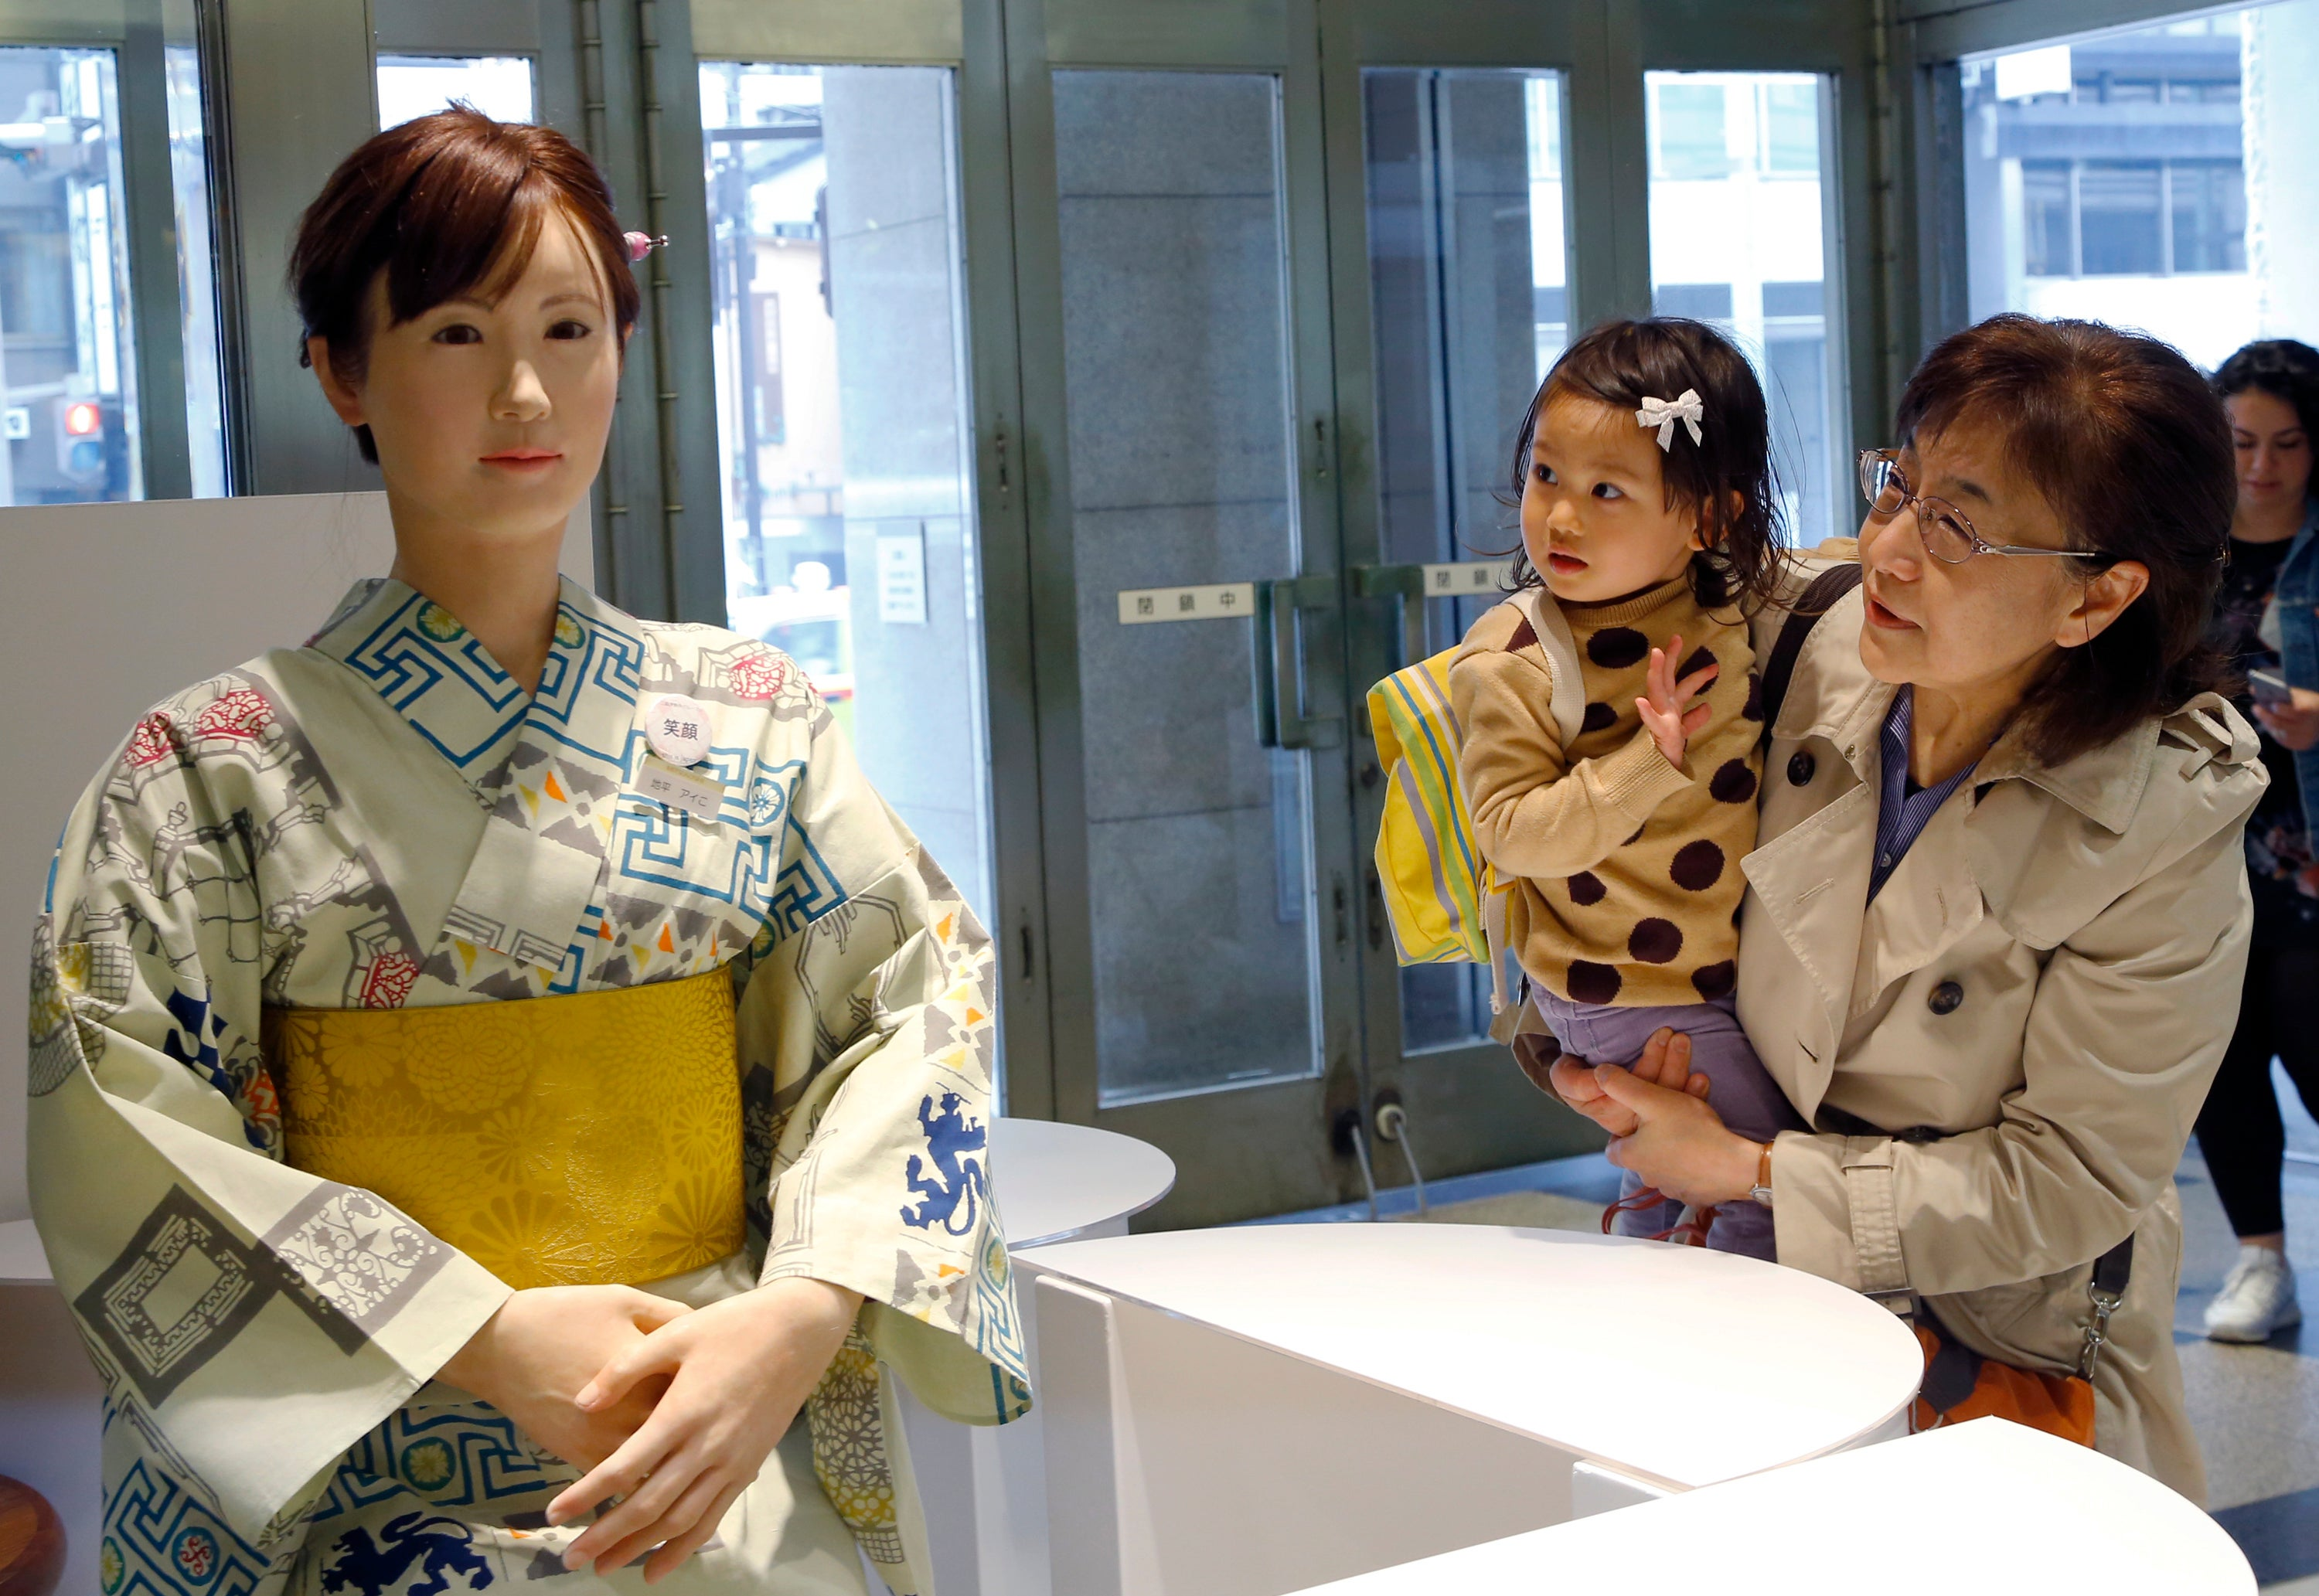 Meet The Humanoid Robot Greeting Retail Customers In Japan Gizmodo